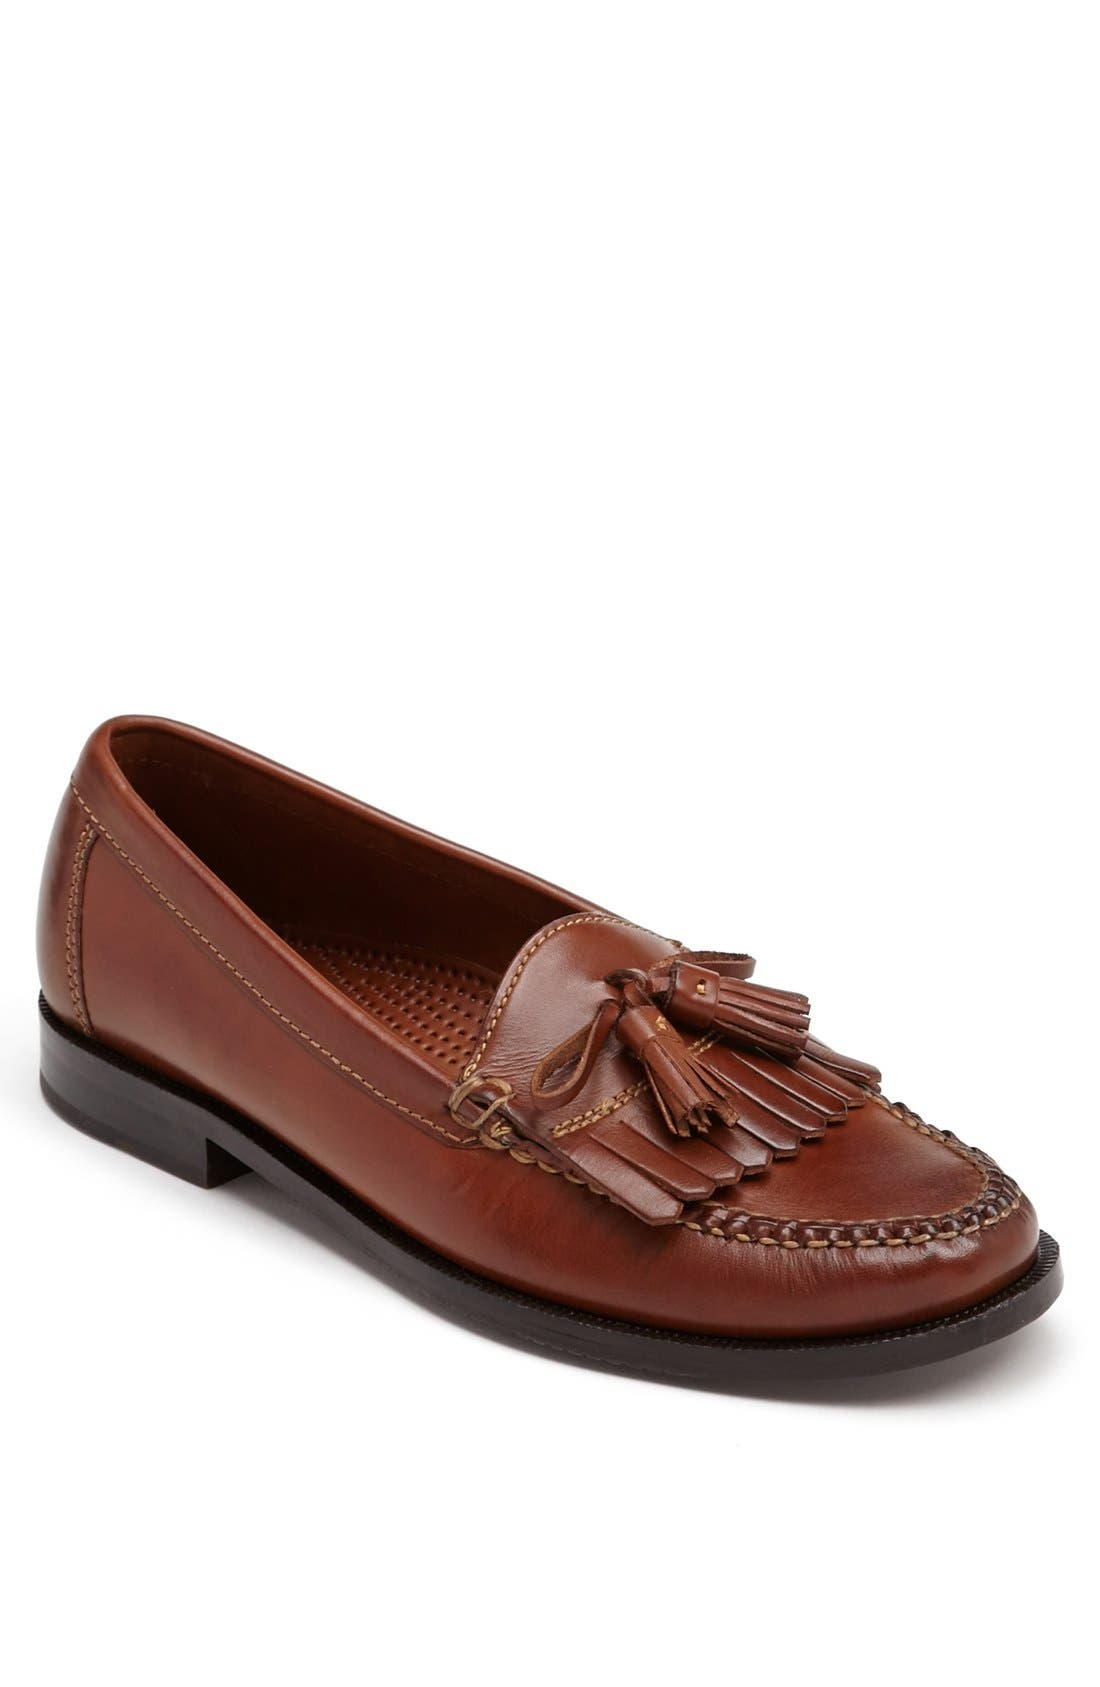 Main Image - Cole Haan 'Dwight' Loafer   (Men)